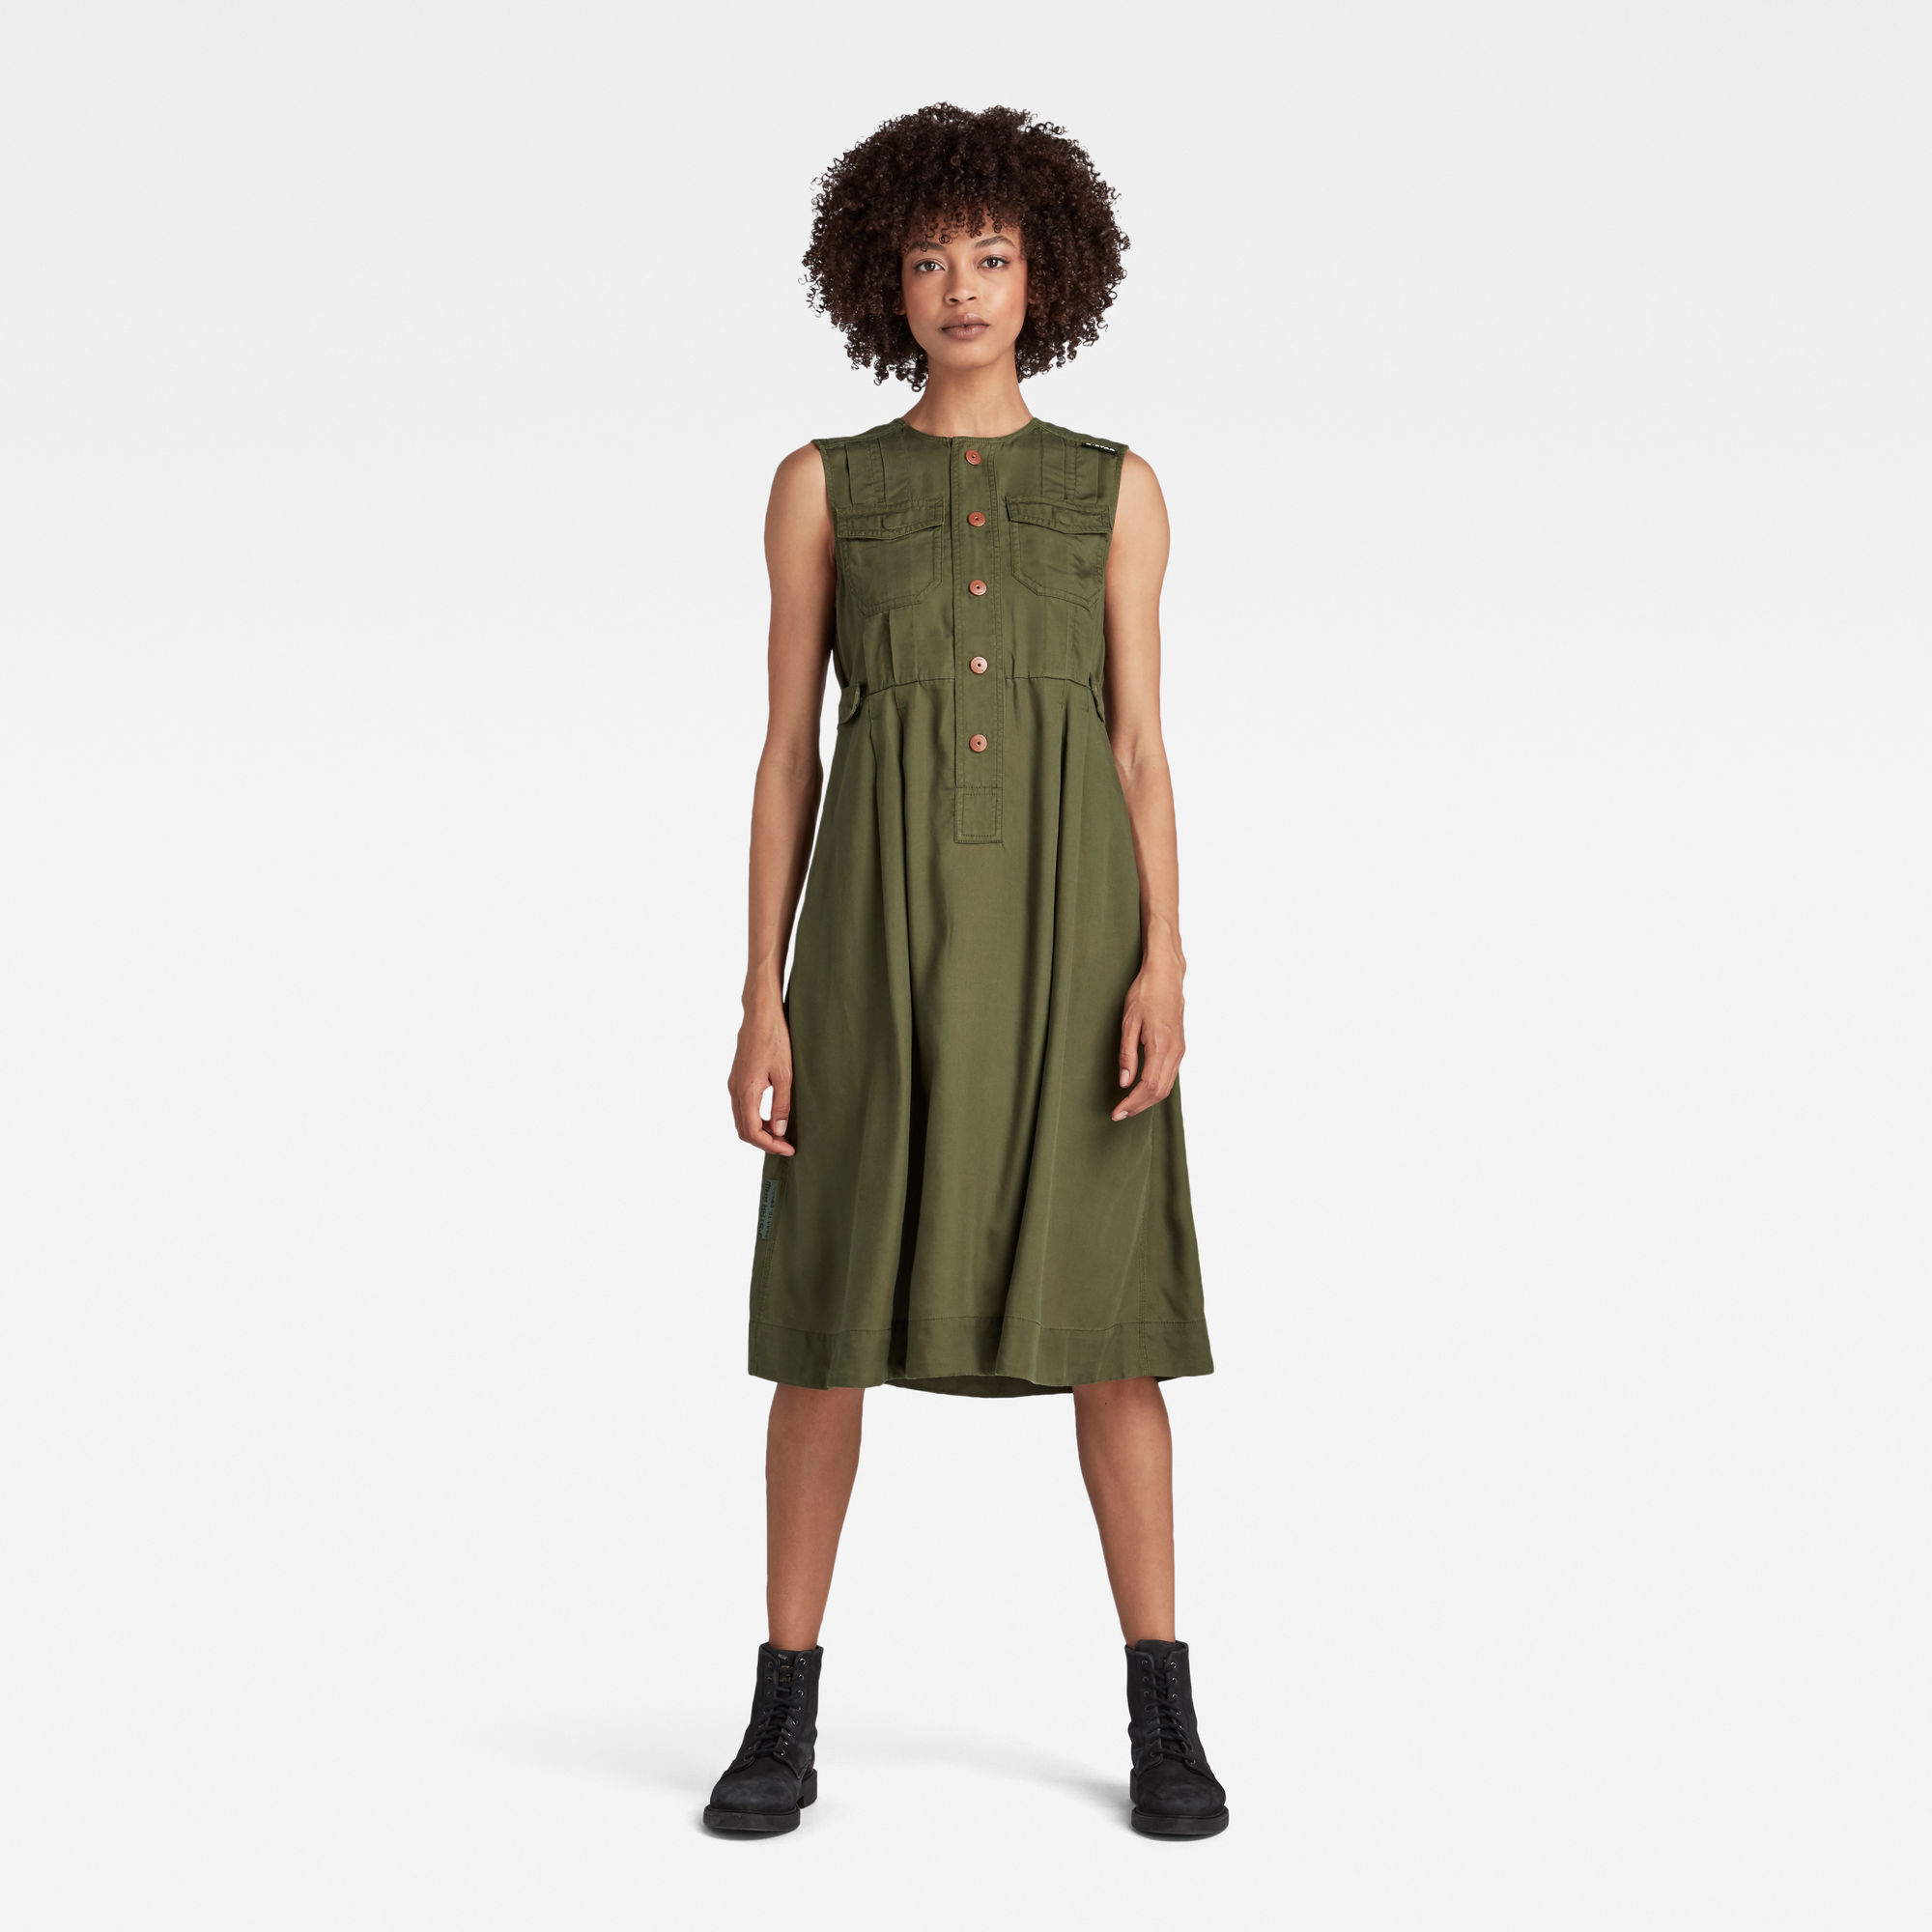 G-Star RAW Dames Fit And Flare Jurk Groen